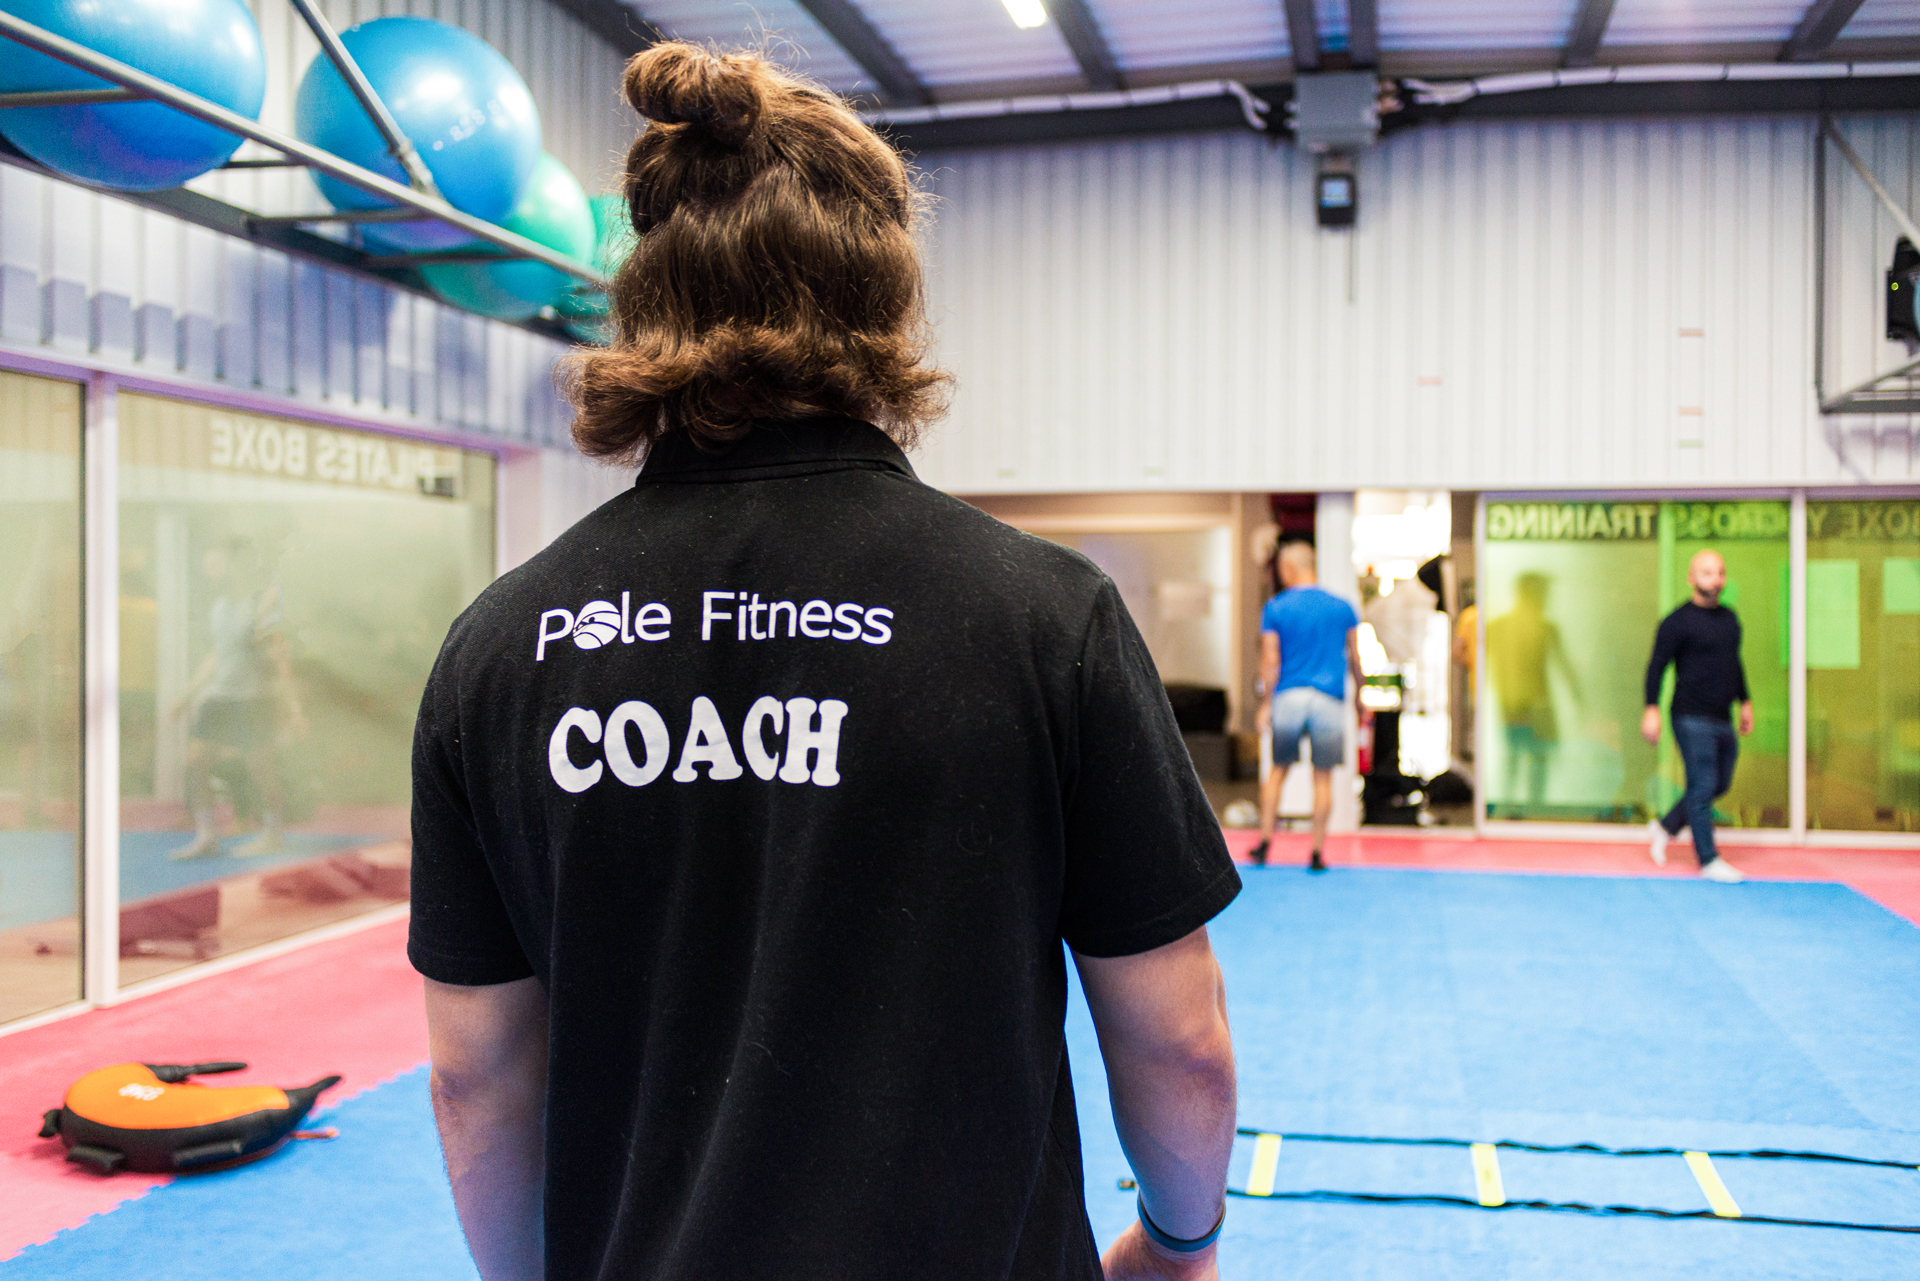 Pole Fitness - Personnal Training